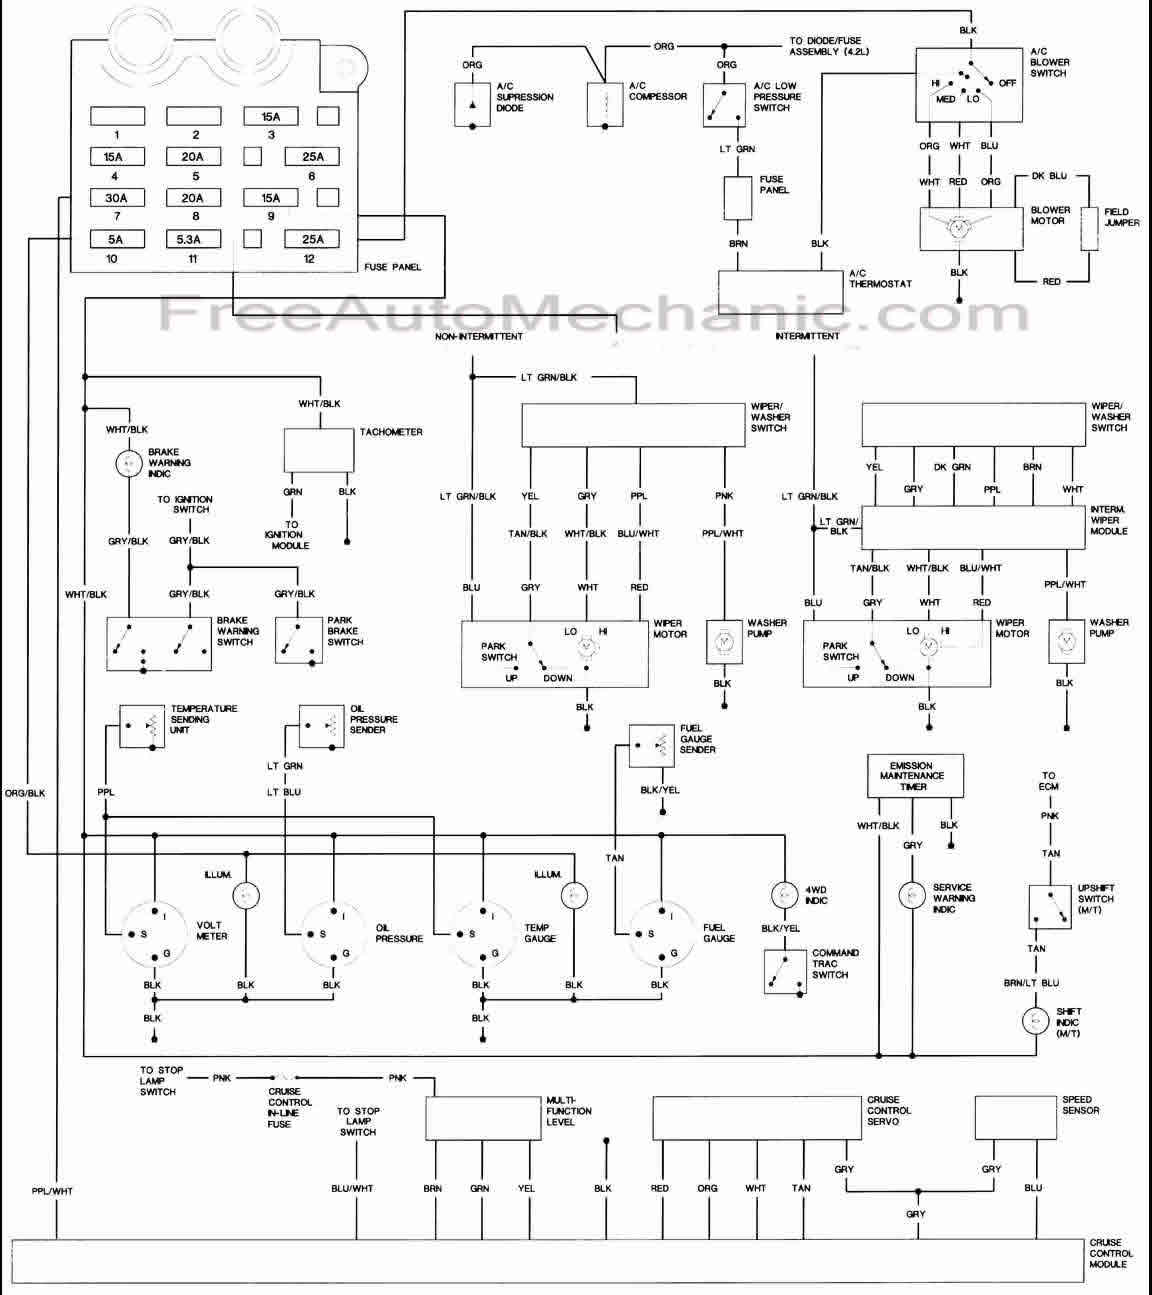 DIAGRAM] 1990 Jeep Wrangler Wiring Diagram FULL Version HD Quality Wiring  Diagram - MEDIEVAL2UPDATE.OLTH-GUILD.FRmedieval2update.olth-guild.fr